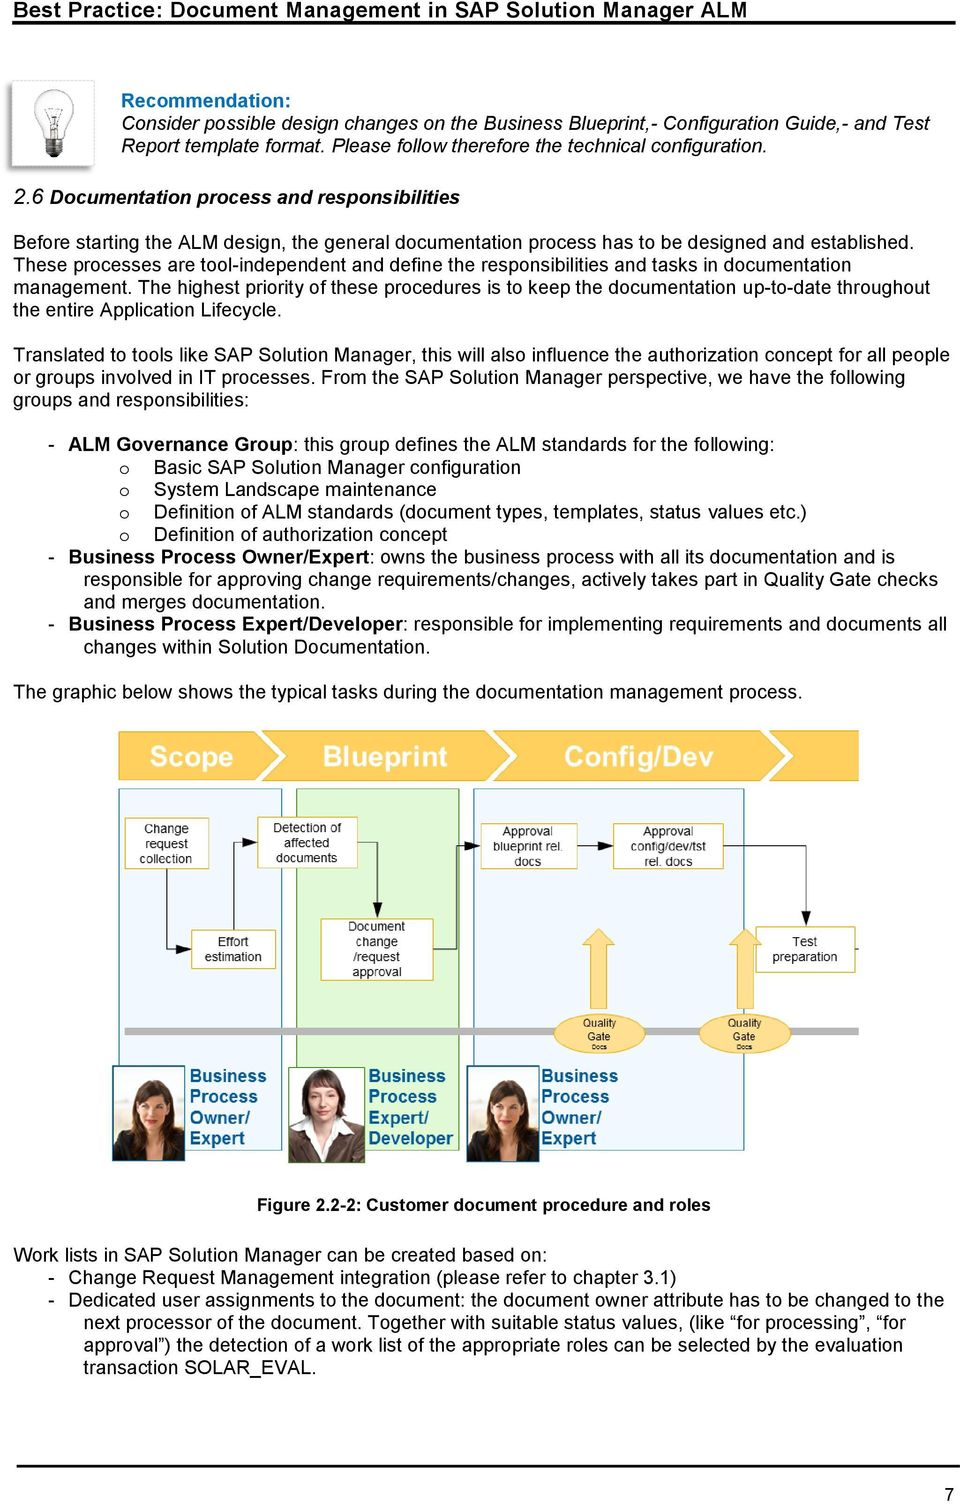 Document management in sap solution manager application lifecycle these processes are tool independent and define the responsibilities and tasks in documentation management malvernweather Choice Image